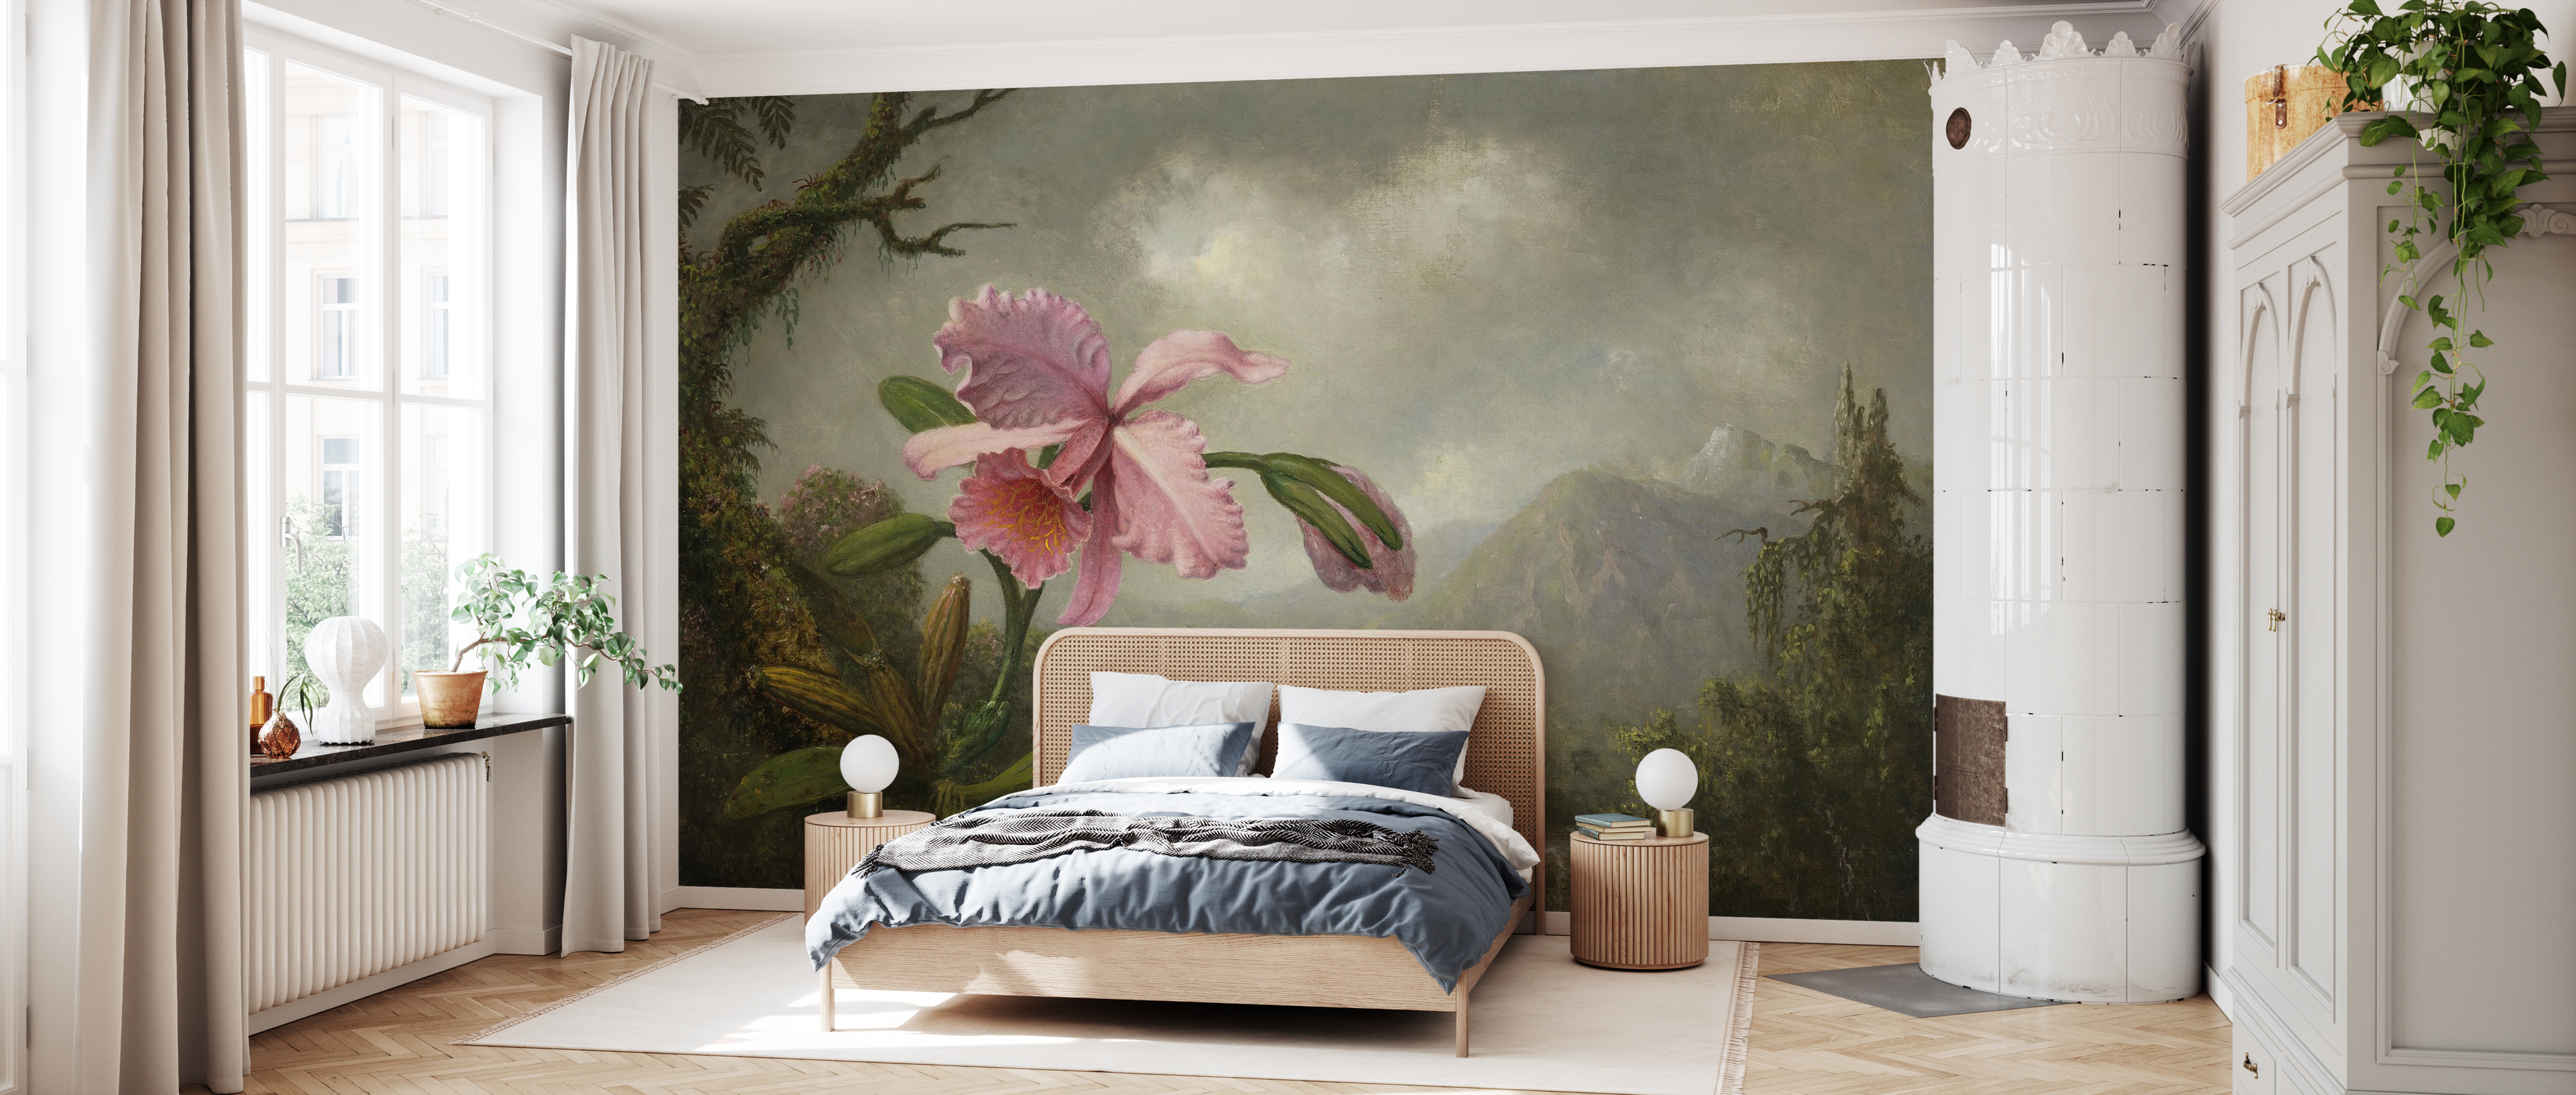 Orchid And Hummingbird Martin Johnson Heade Mit Fototapeten Einrichten Photowall